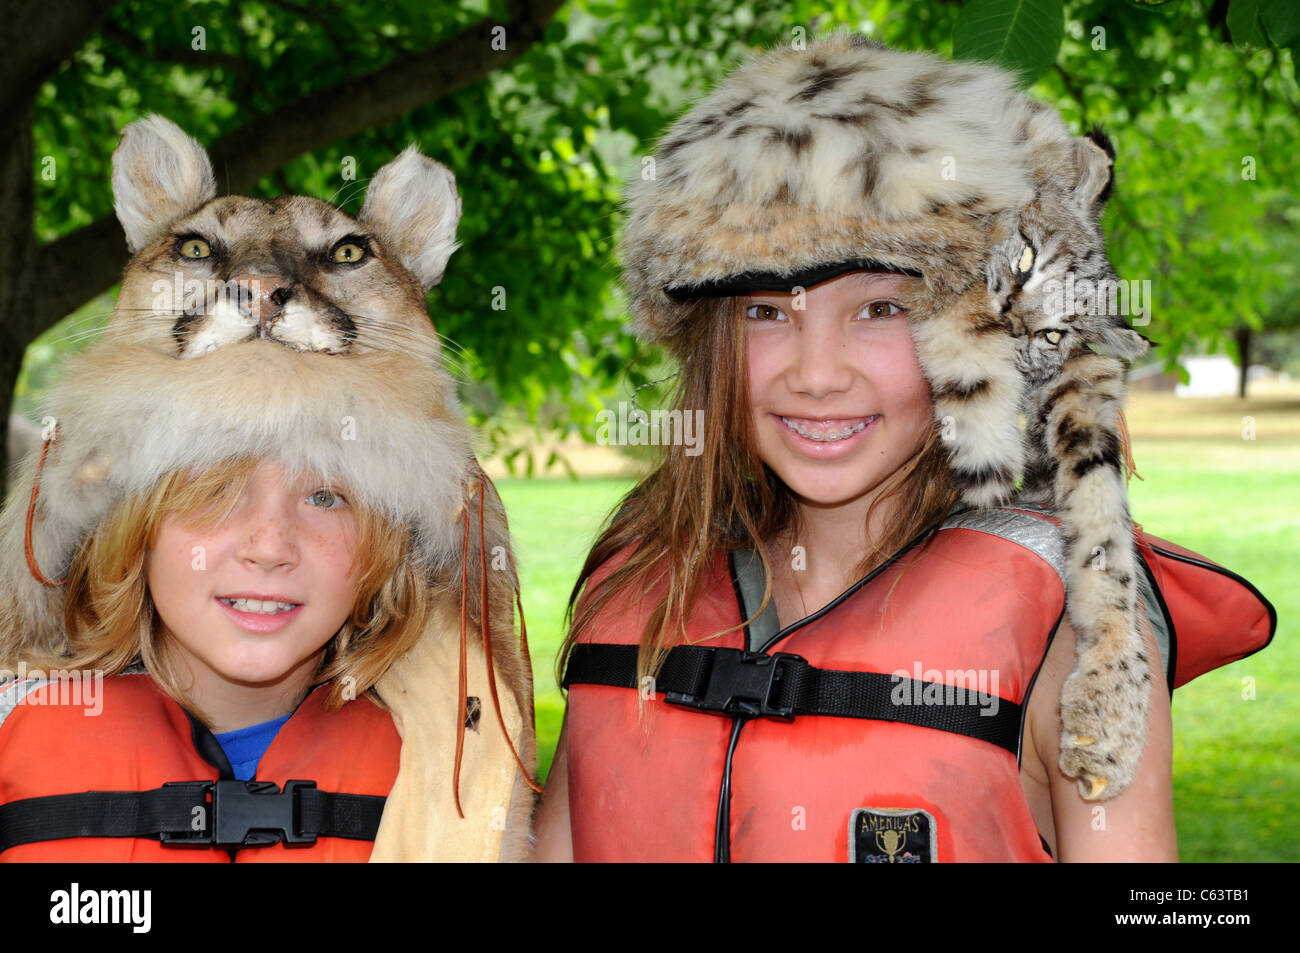 Boy and girl 8-12 years wearing wild cat fur hats during Salmon River rafting trip in Idaho - Stock Image